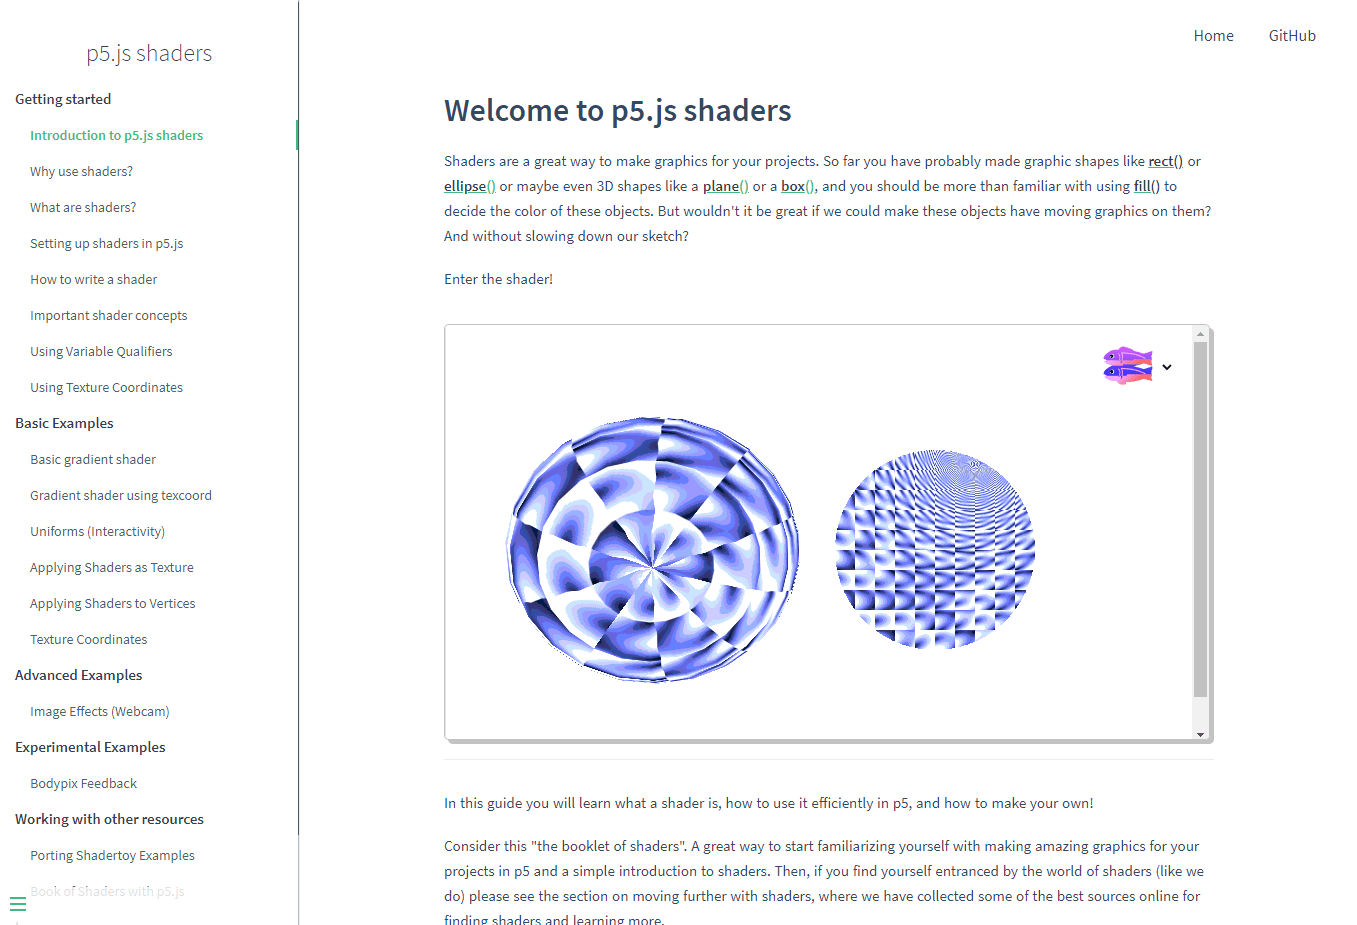 A screenshot of the Introduction page of the p5.js Shaders guide website